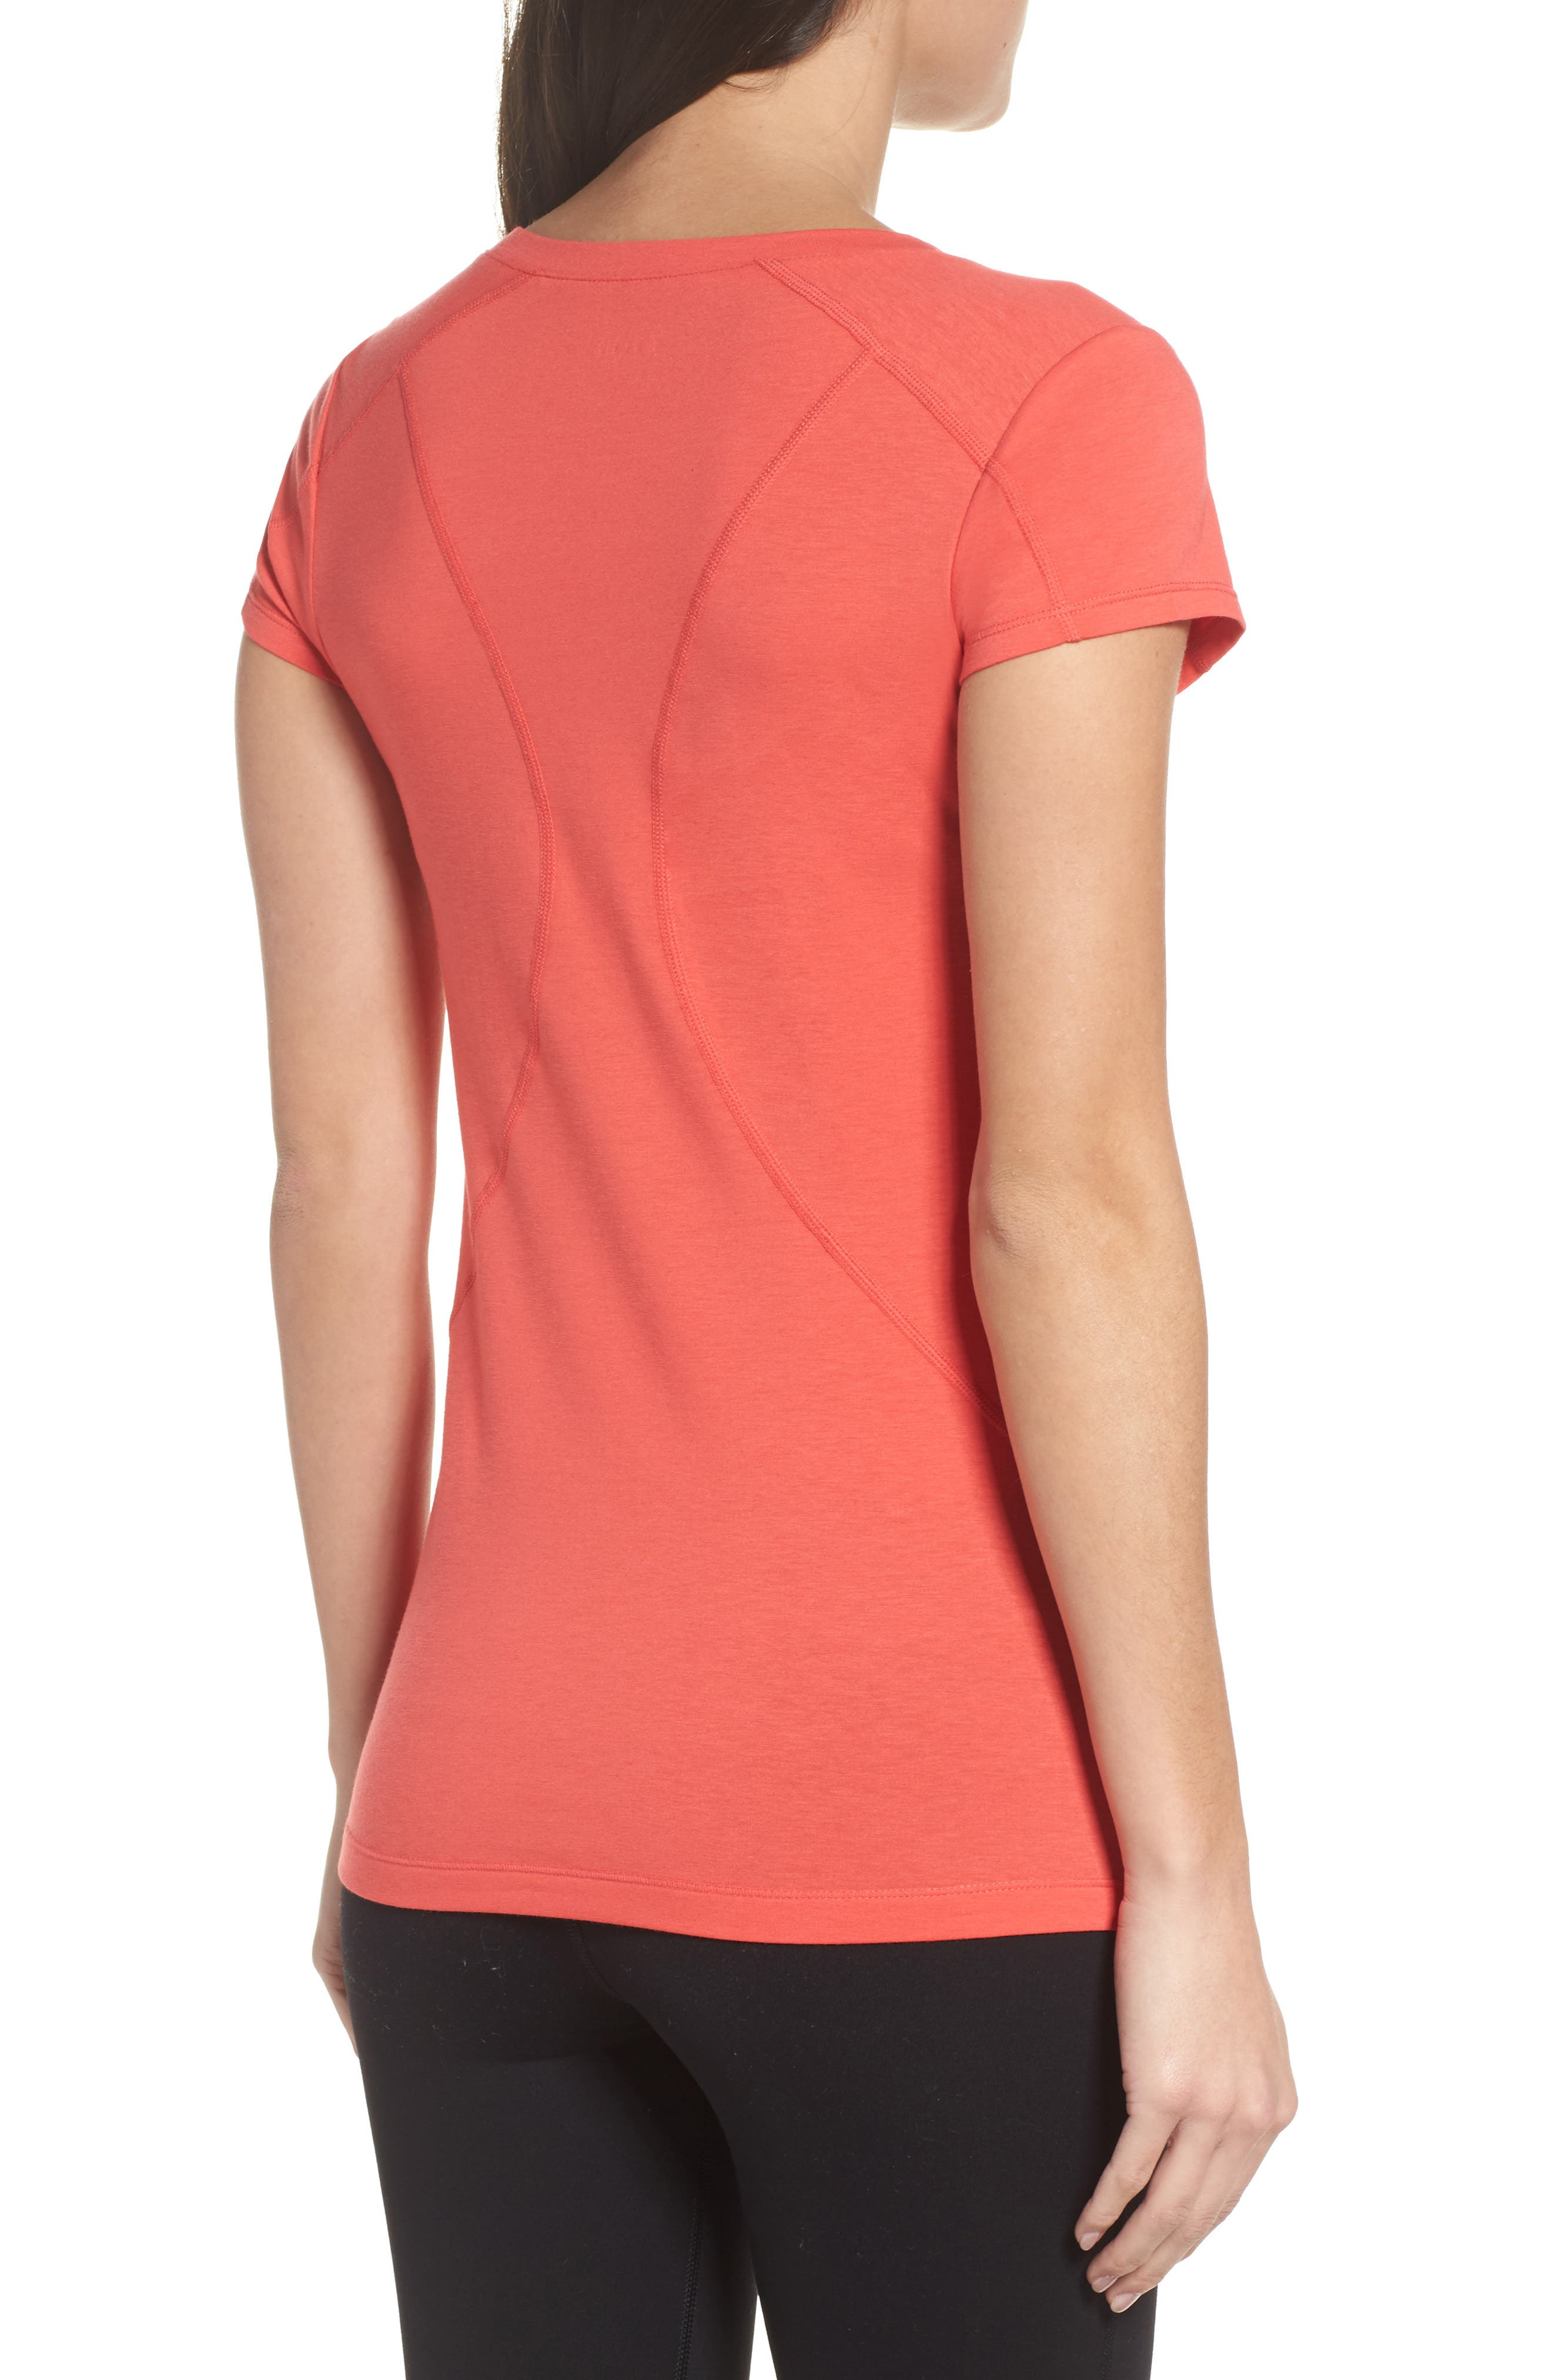 Z Tee,                             Alternate thumbnail 2, color,                             Red Hibiscus